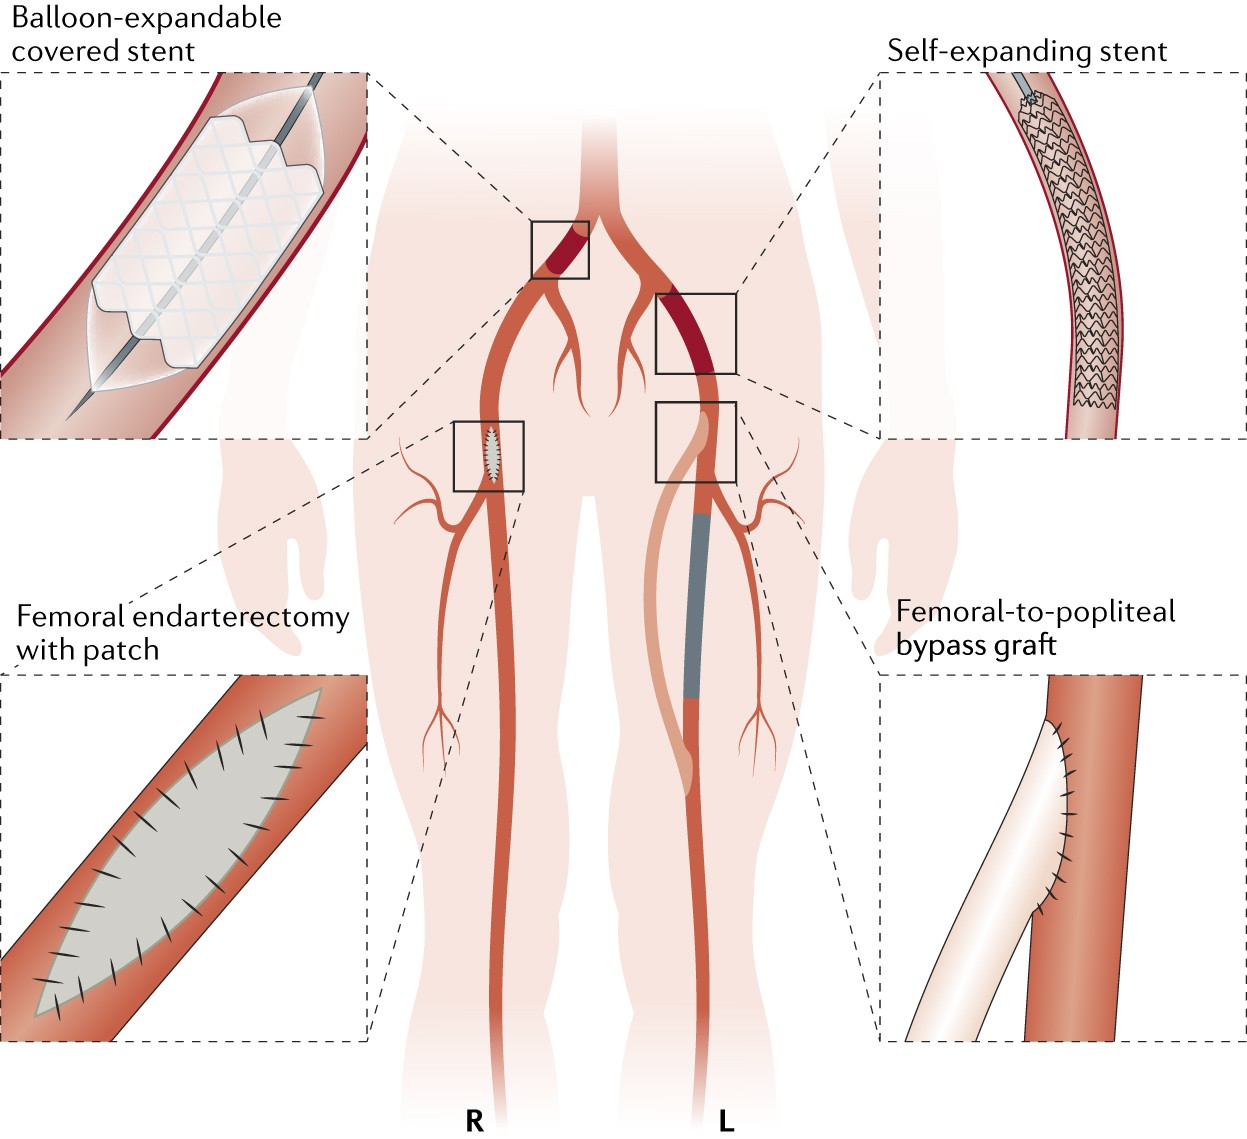 Interventions for lower extremity peripheral artery disease | Nature ...